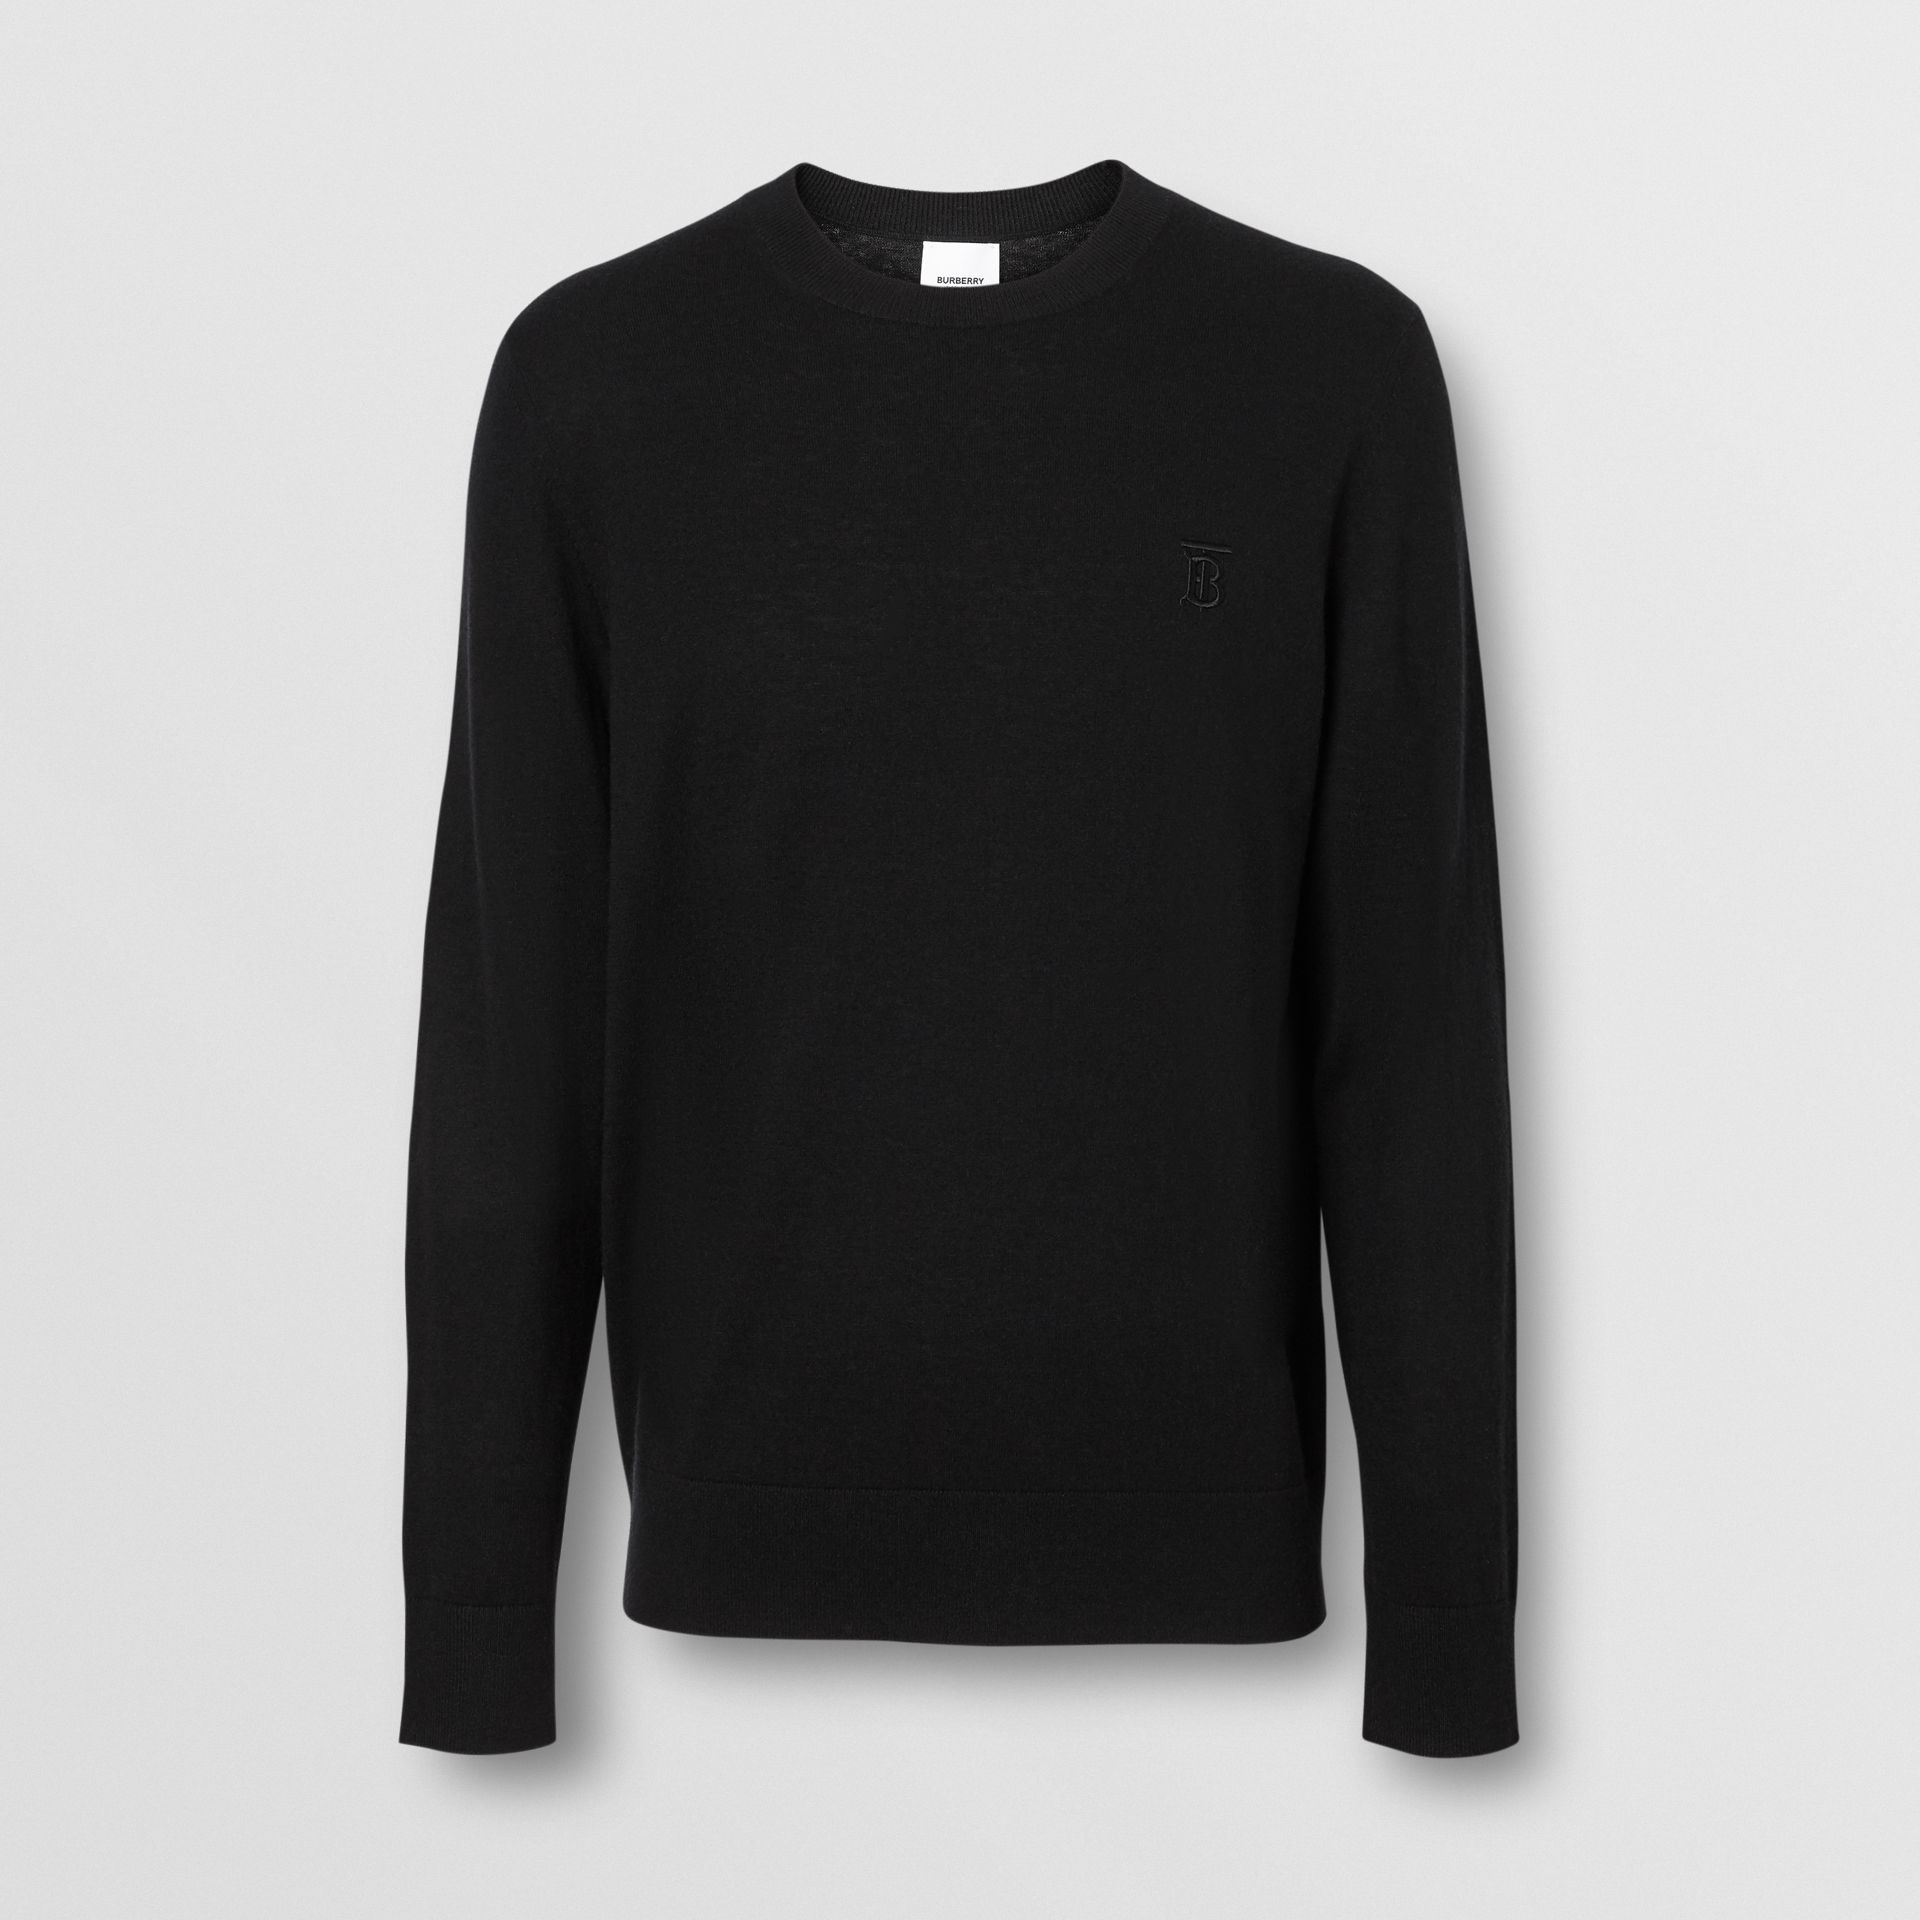 Monogram Motif Cashmere Sweater in Black - Men | Burberry - gallery image 3